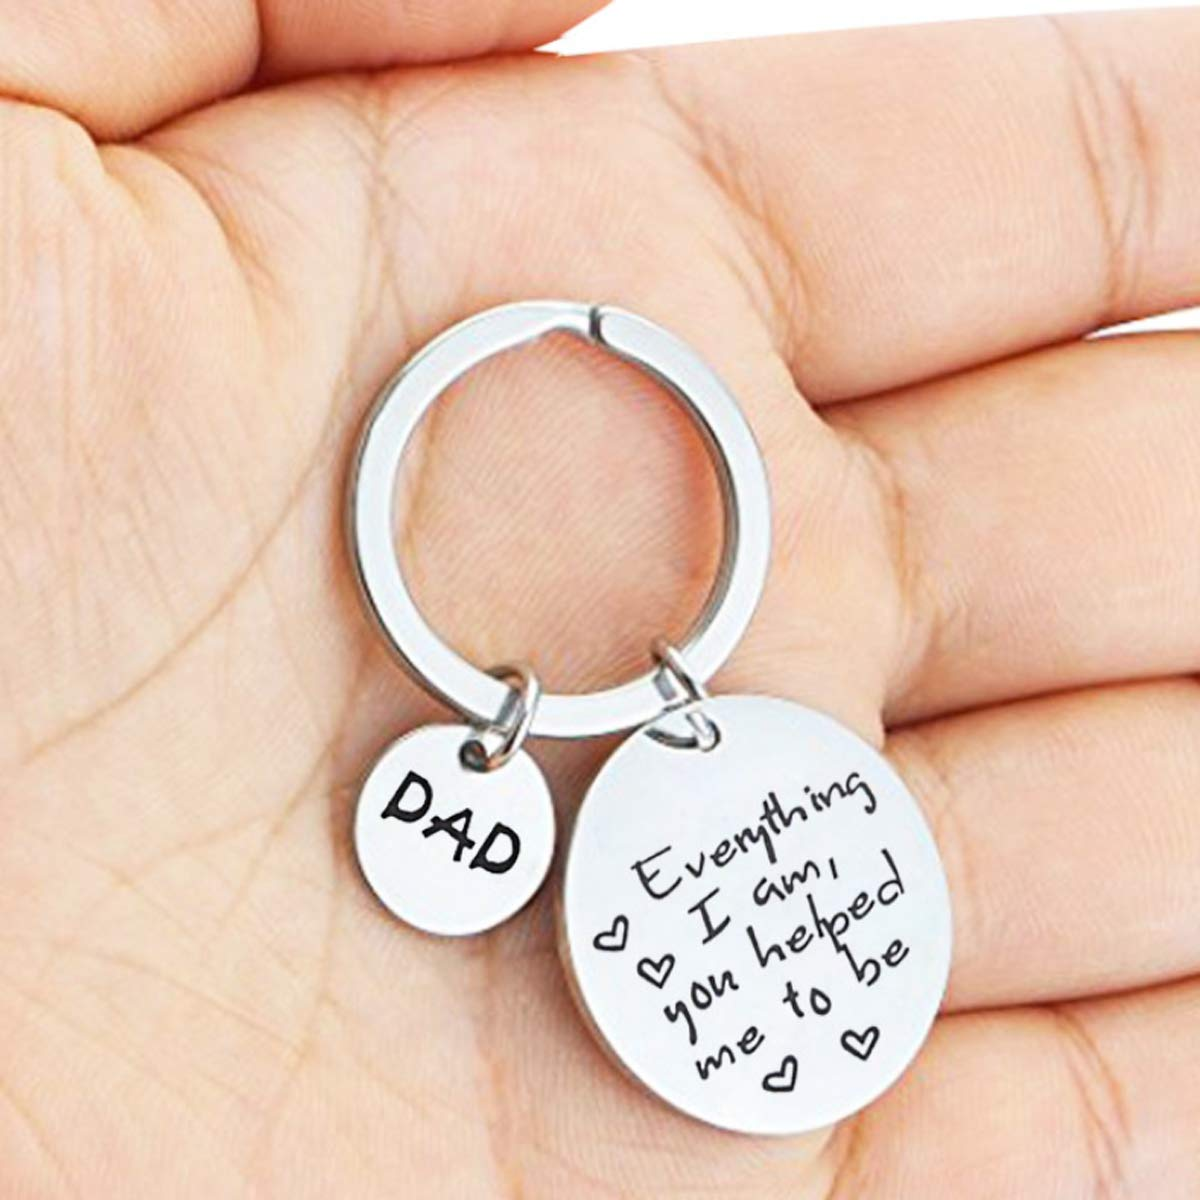 Fathers Day Keychain Fathers Day Gift from Daughter or Son Fathers Day Gifts for Dad Papa